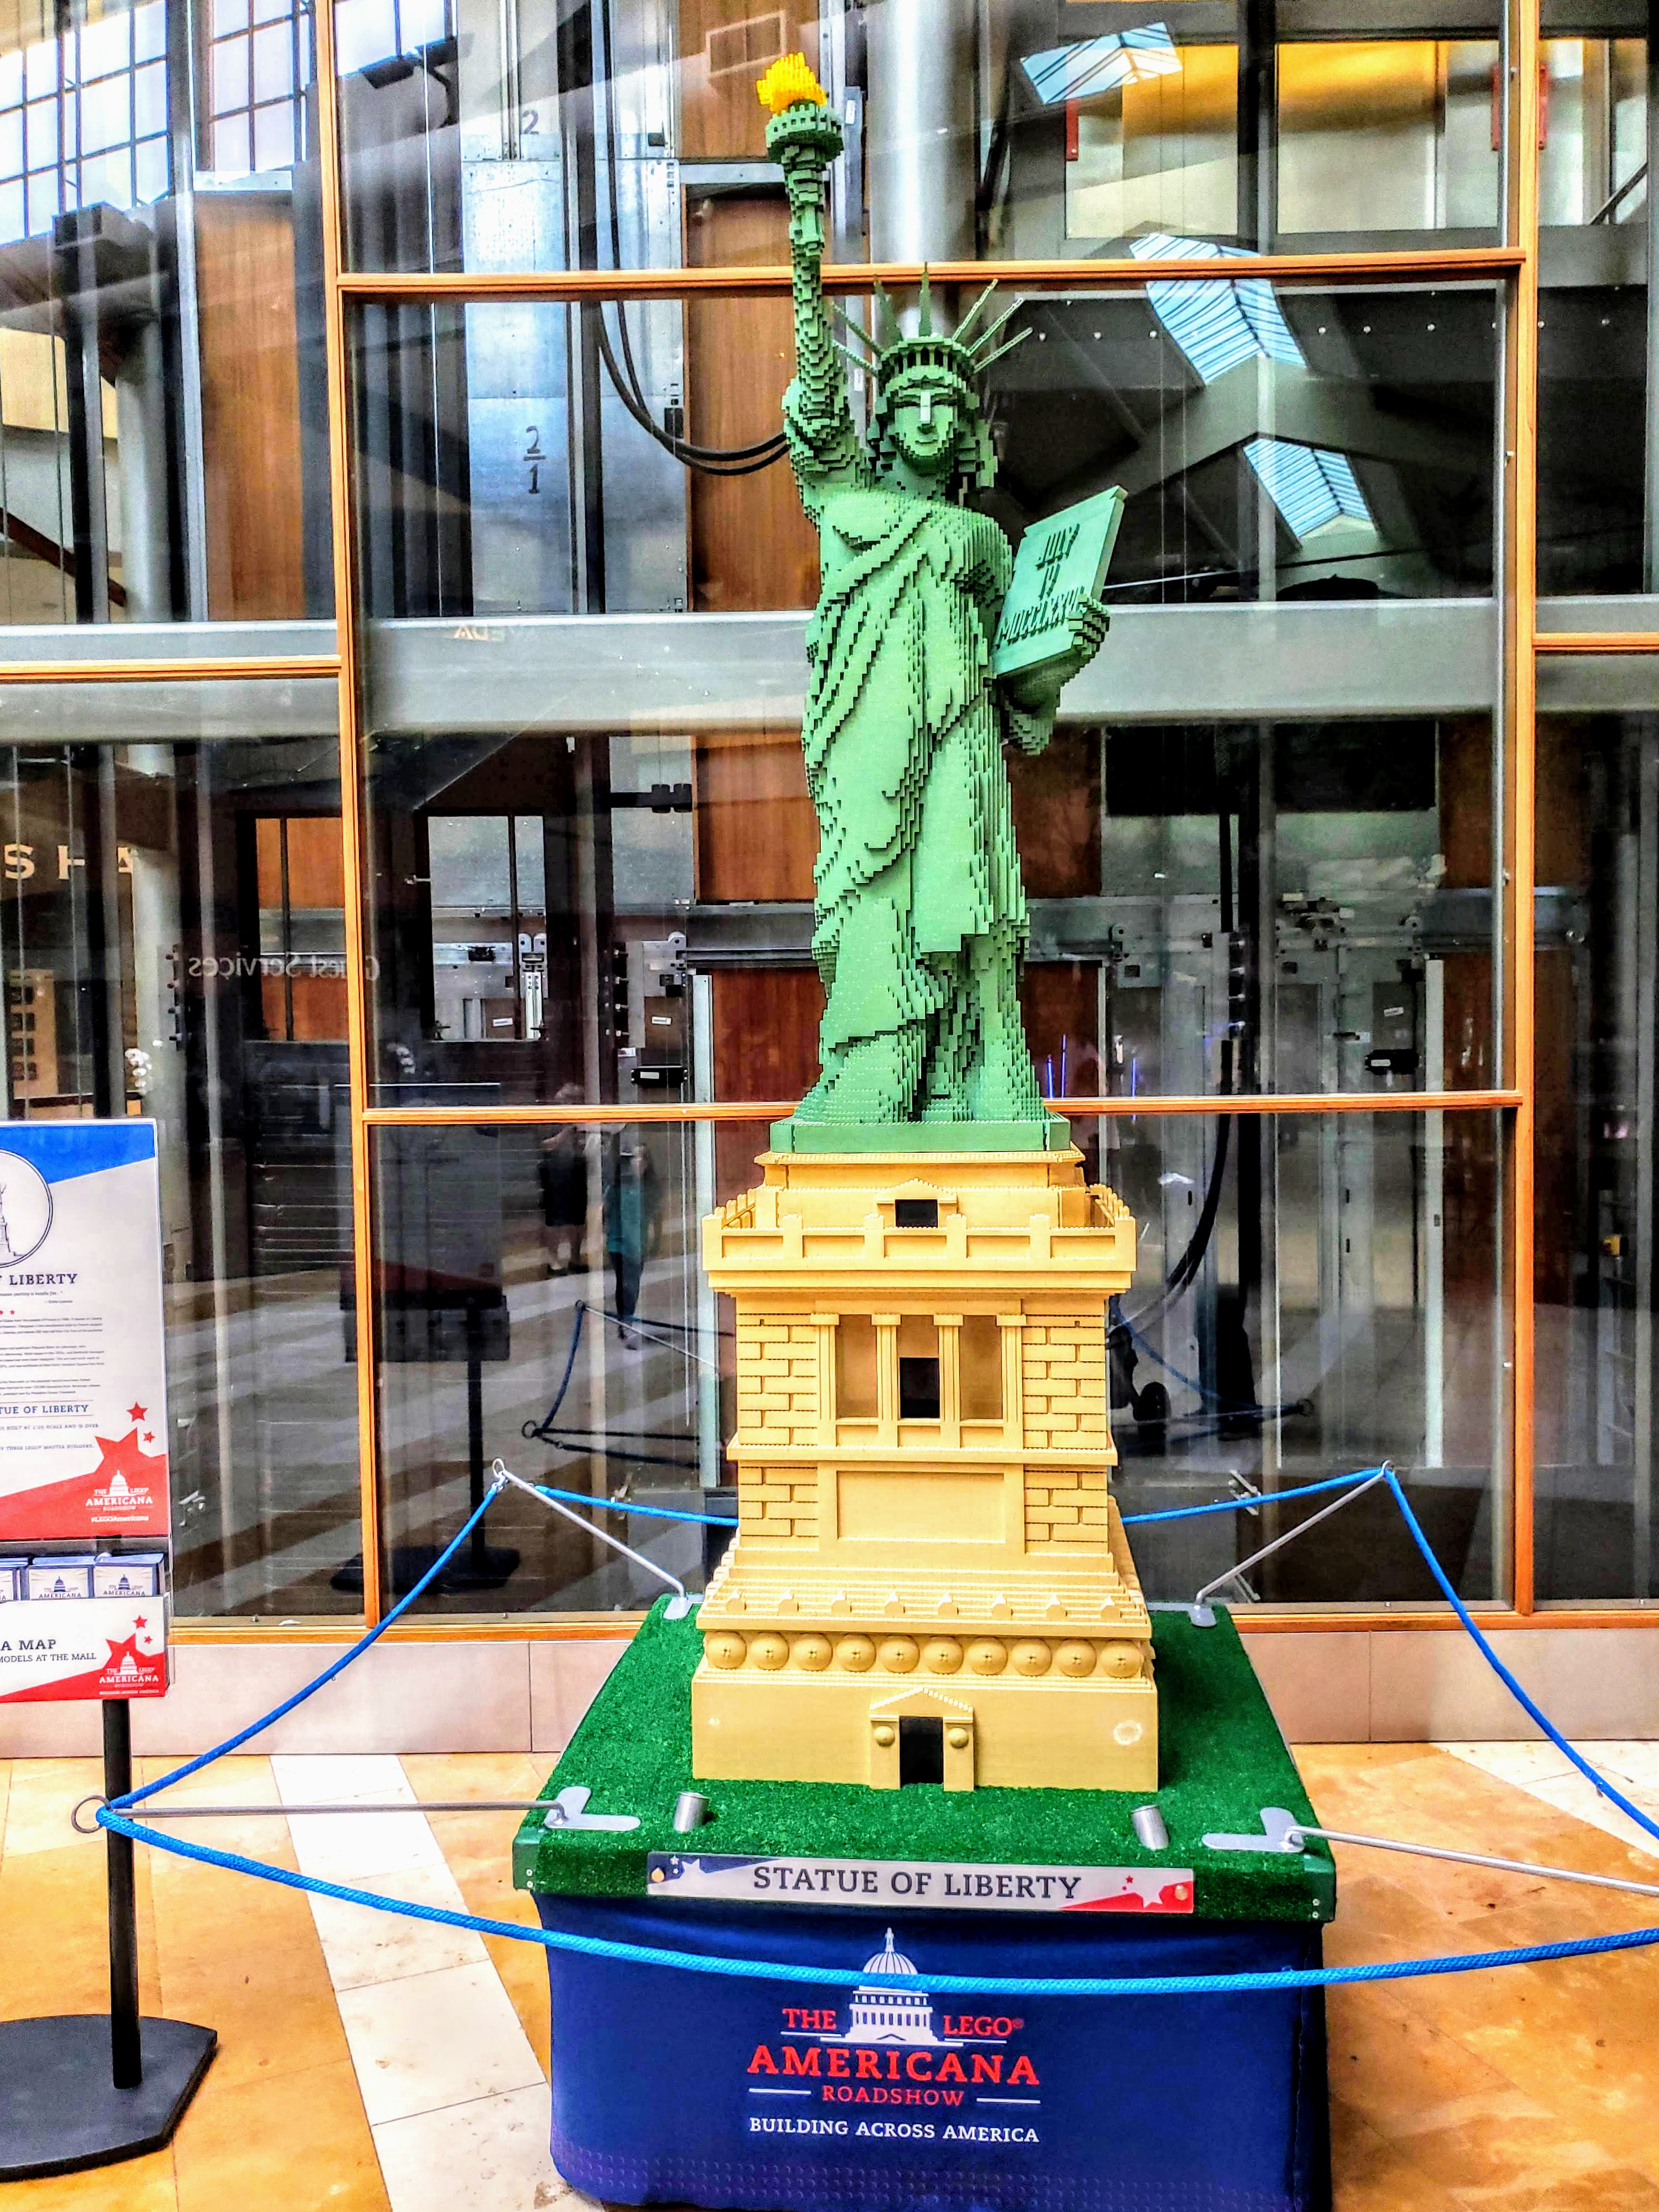 The LEGO Americana Roadshow is now at Bellevue Square this summer. A LEGO exhibit that is a must see. Large-scale models, hands-on activities, and more!#lego #summer #familytravel #kidsactivities #seattle #washington #pnw #toys #legomodels #legoexhibit #thingstodo #forkids